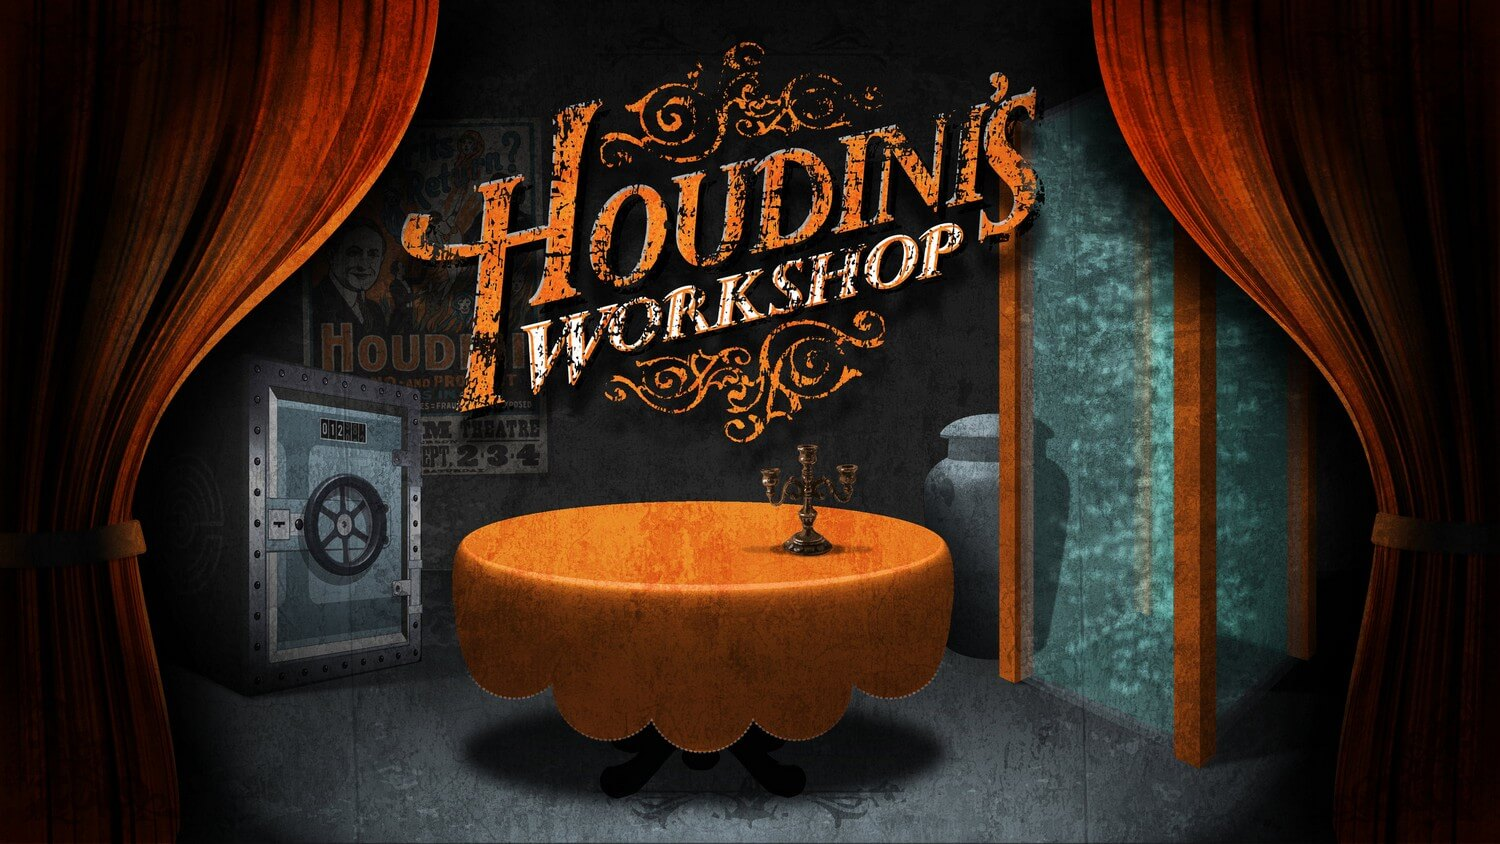 houdini's workshop - AVAILABLE AT NEW TOWN:It has been rumoured that The Great Harry Houdini – the long-deceased master magician and escapologist – left behind a secret workshop in the heart of the city. Away from prying eyes, it is said to be the place that his very best tricks and performances were developed and practiced to perfection. Come, see for yourself what wondrous illusions await in Houdini's Workshop…